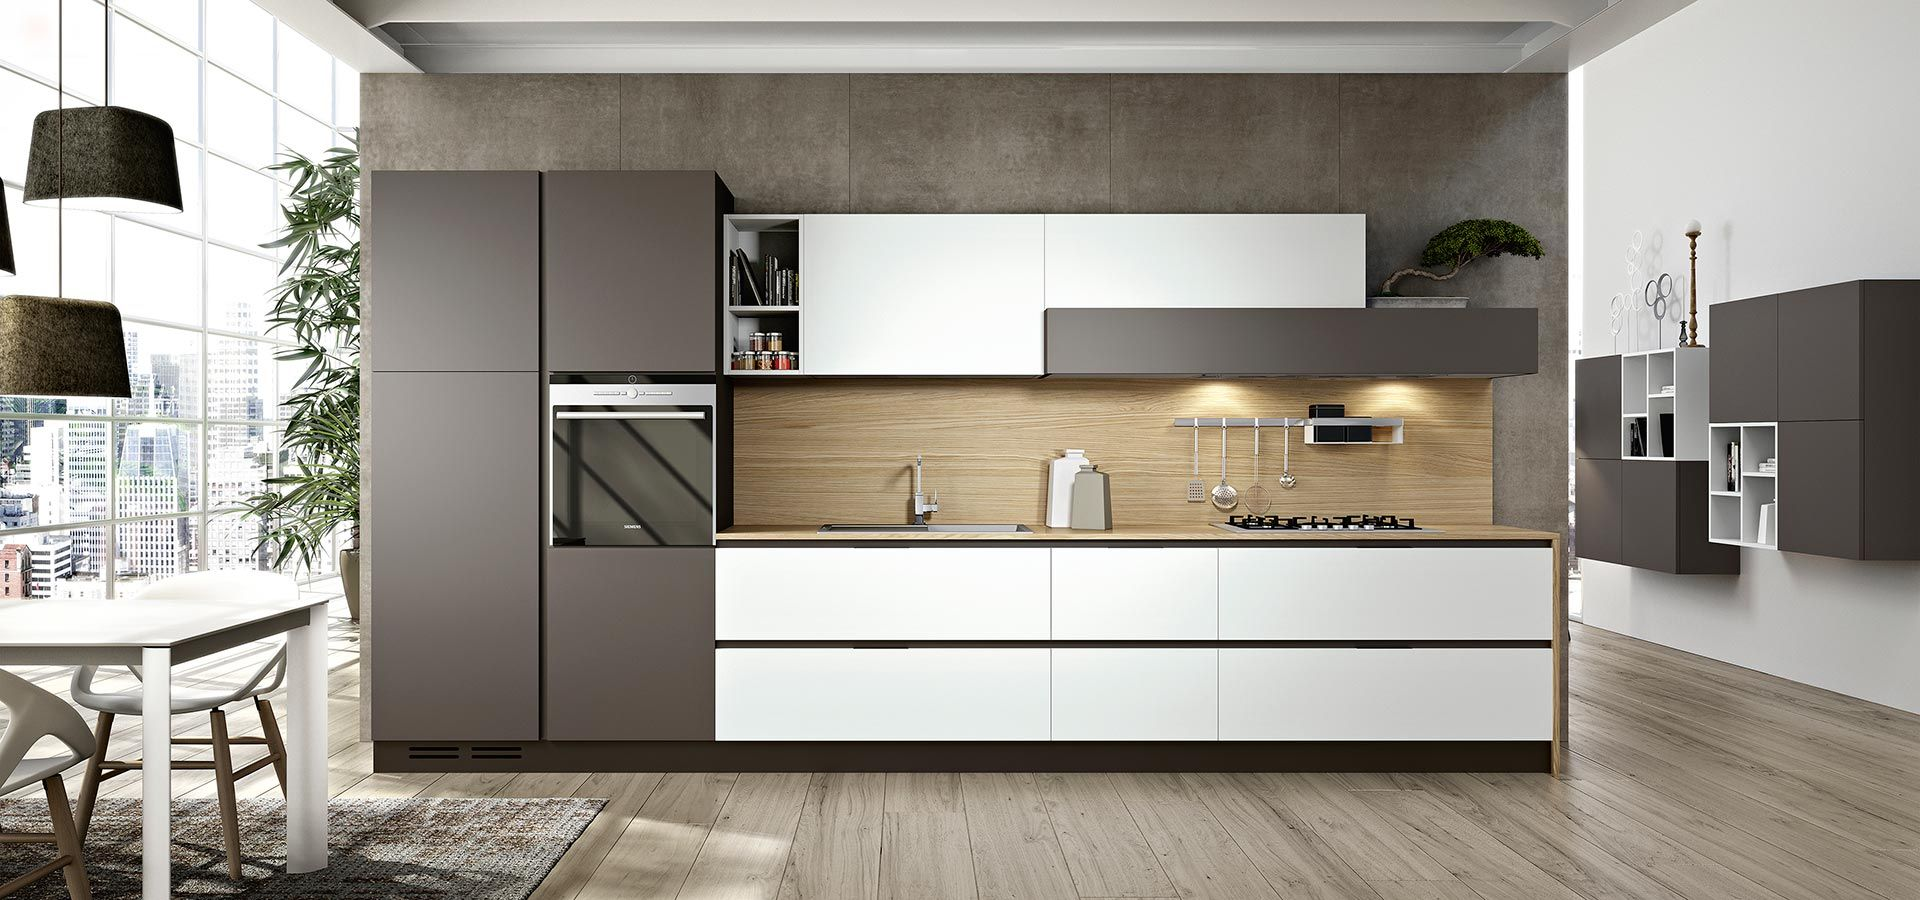 Beau Kitchen Cabinets Without Handles   Linea Plana   Arredo3